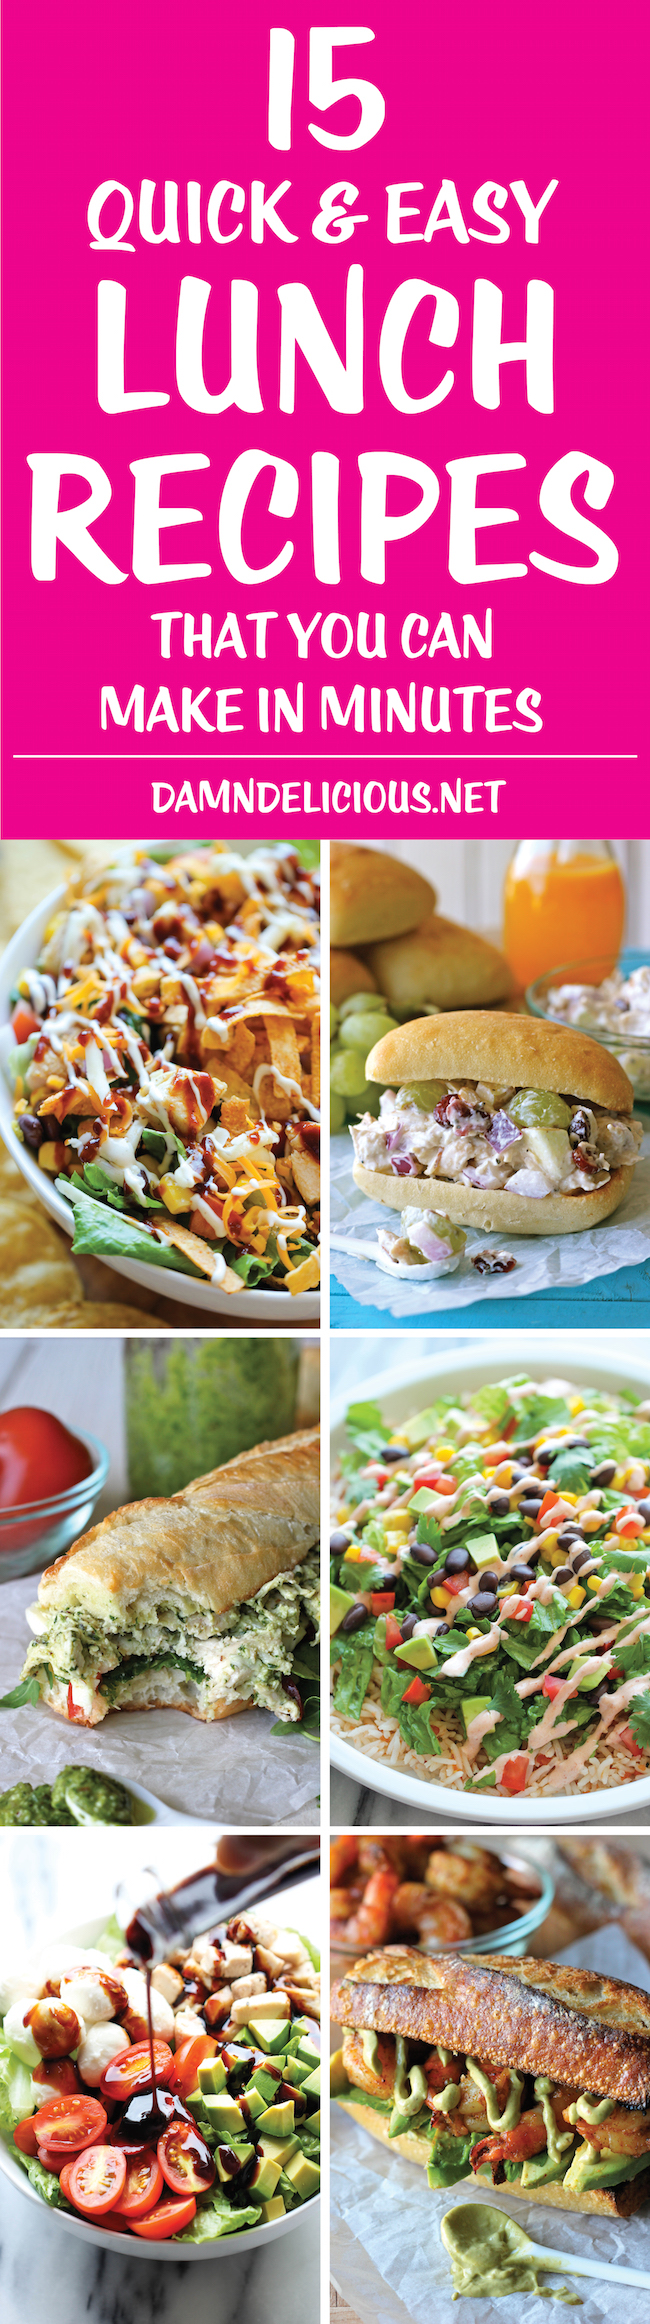 15 quick and easy lunch recipes - damn delicious